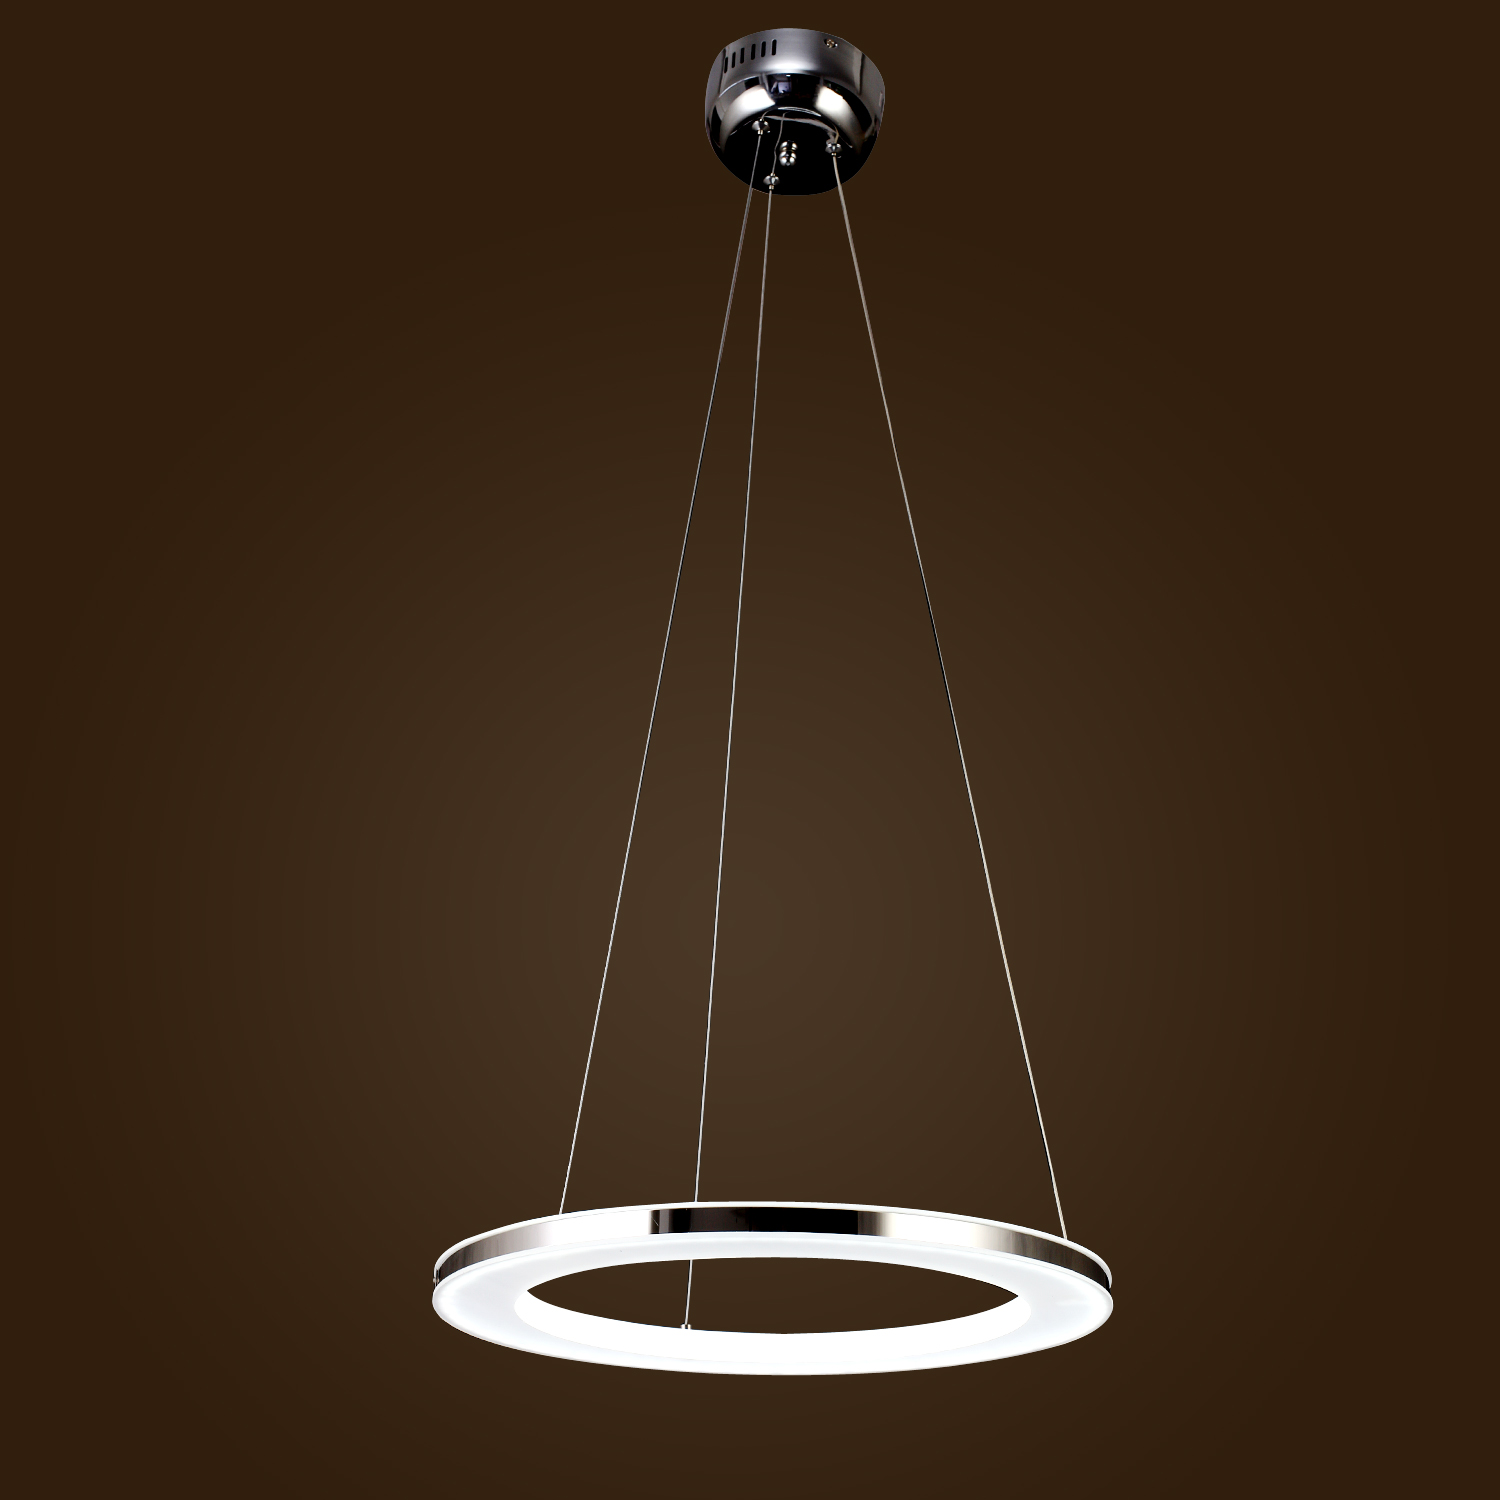 Modern Round Chandeliers 40 60 80cm Modern Led Acrylic Round Pendant Chandelier